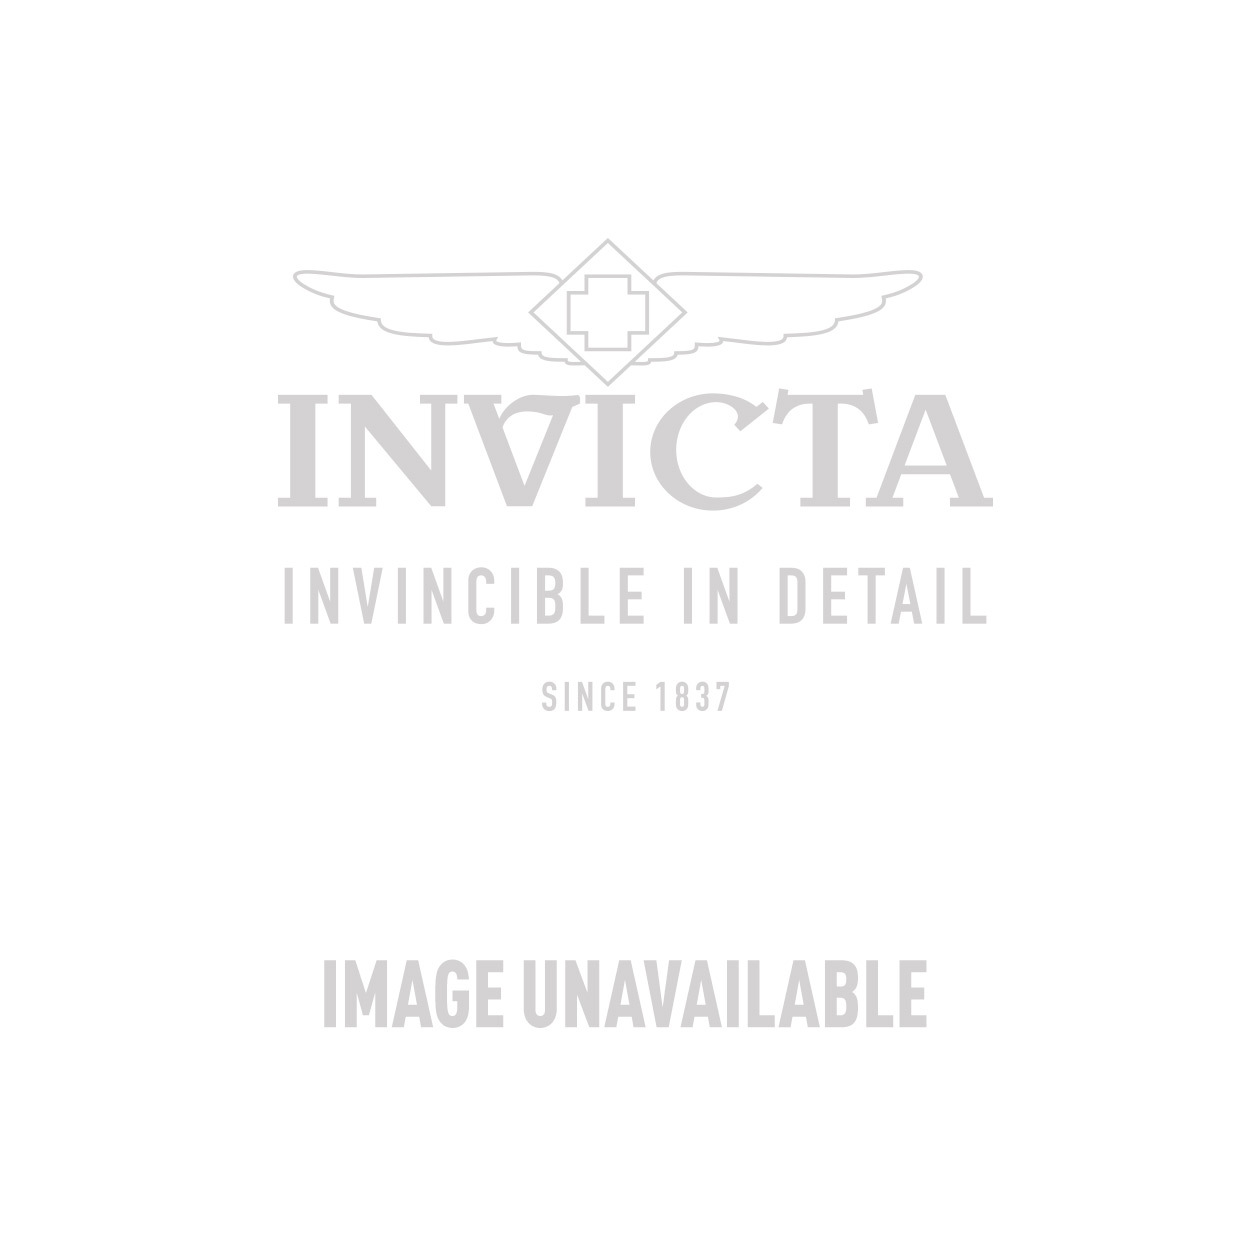 Invicta Specialty Quartz Watch - Black, Stainless Steel case Stainless Steel band - Model 6000